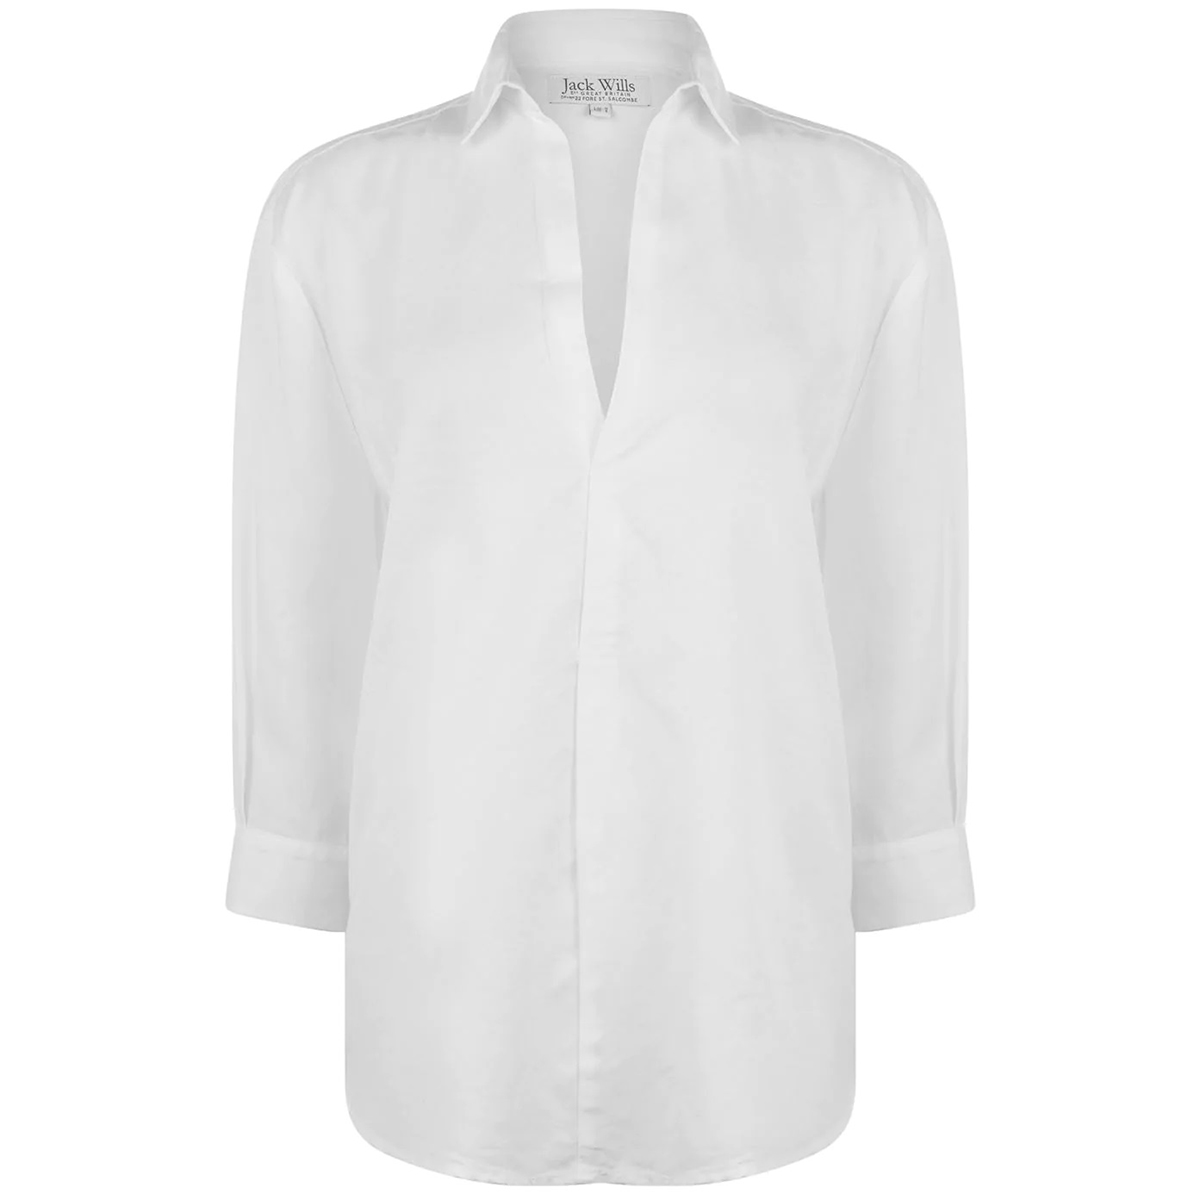 Jack Wills Women's Southcote Casual Long-Sleeve Shirt - White, 12